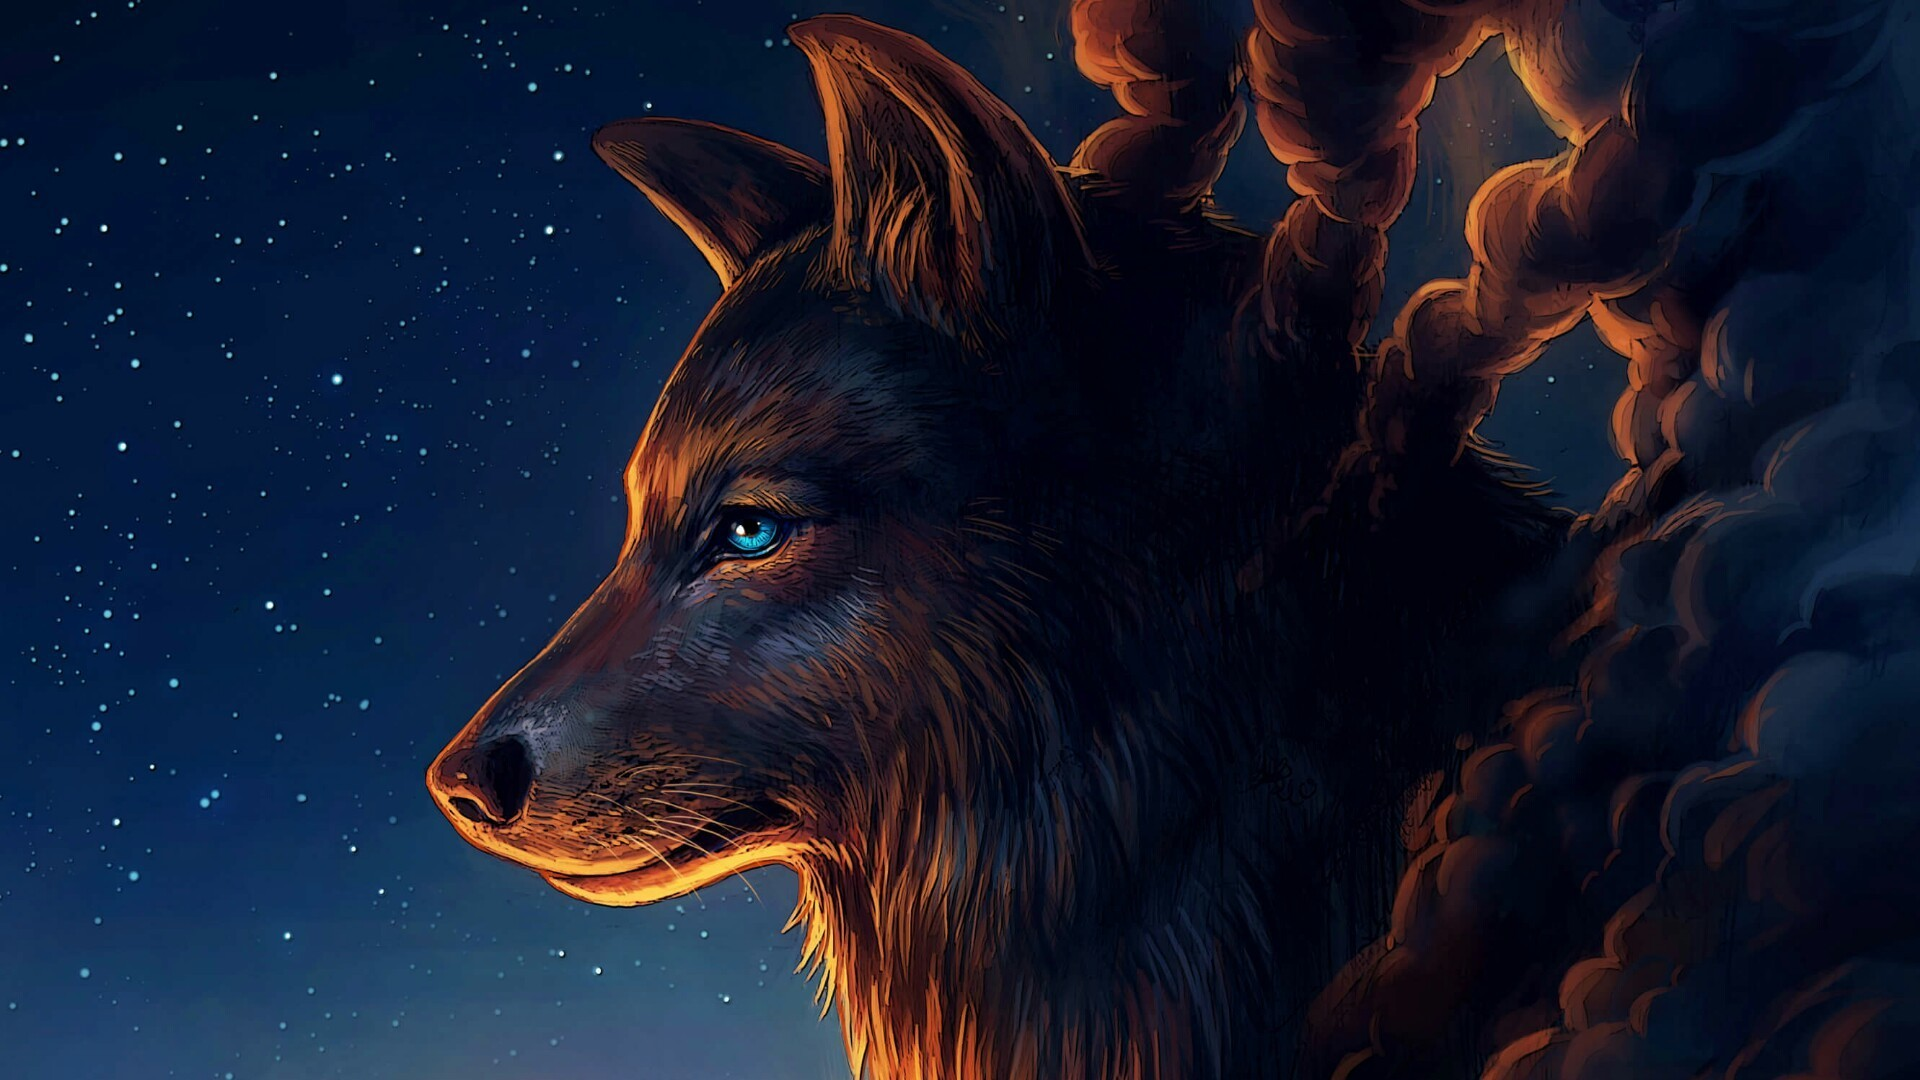 Wolf Wallpapers HD   KoLPaPer   Awesome HD Wallpapers 1920x1080